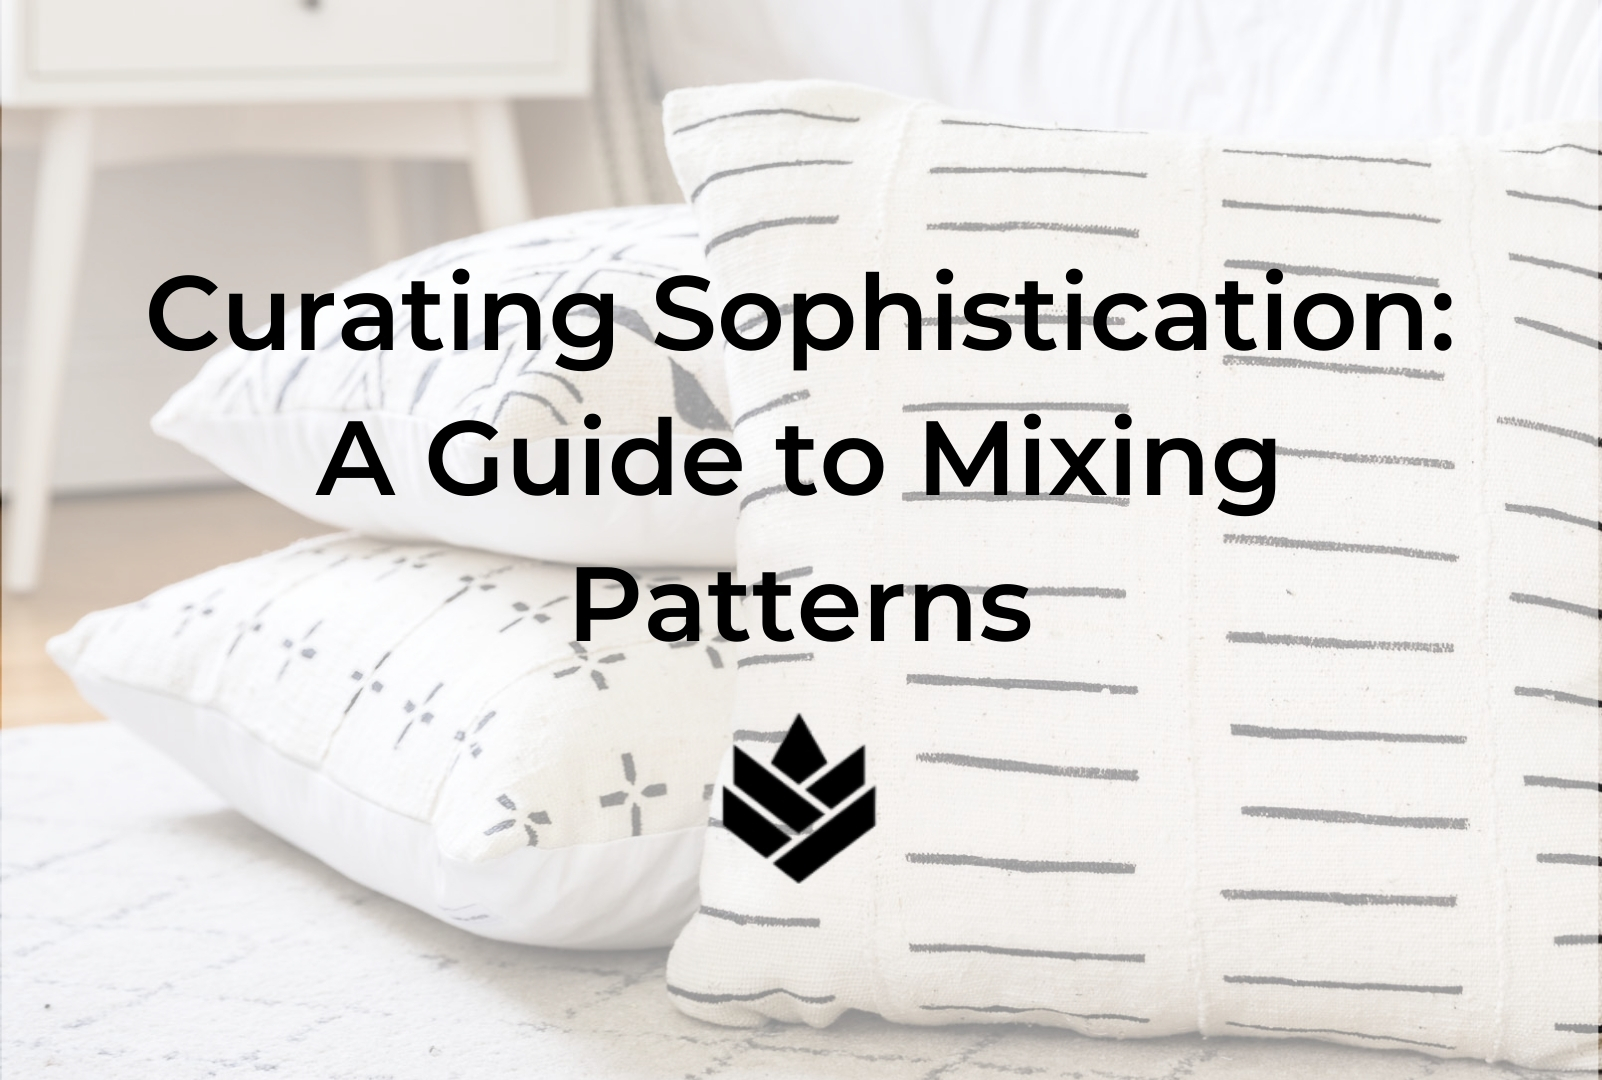 Curating Sophistication: A Guide to Mixing Patterns